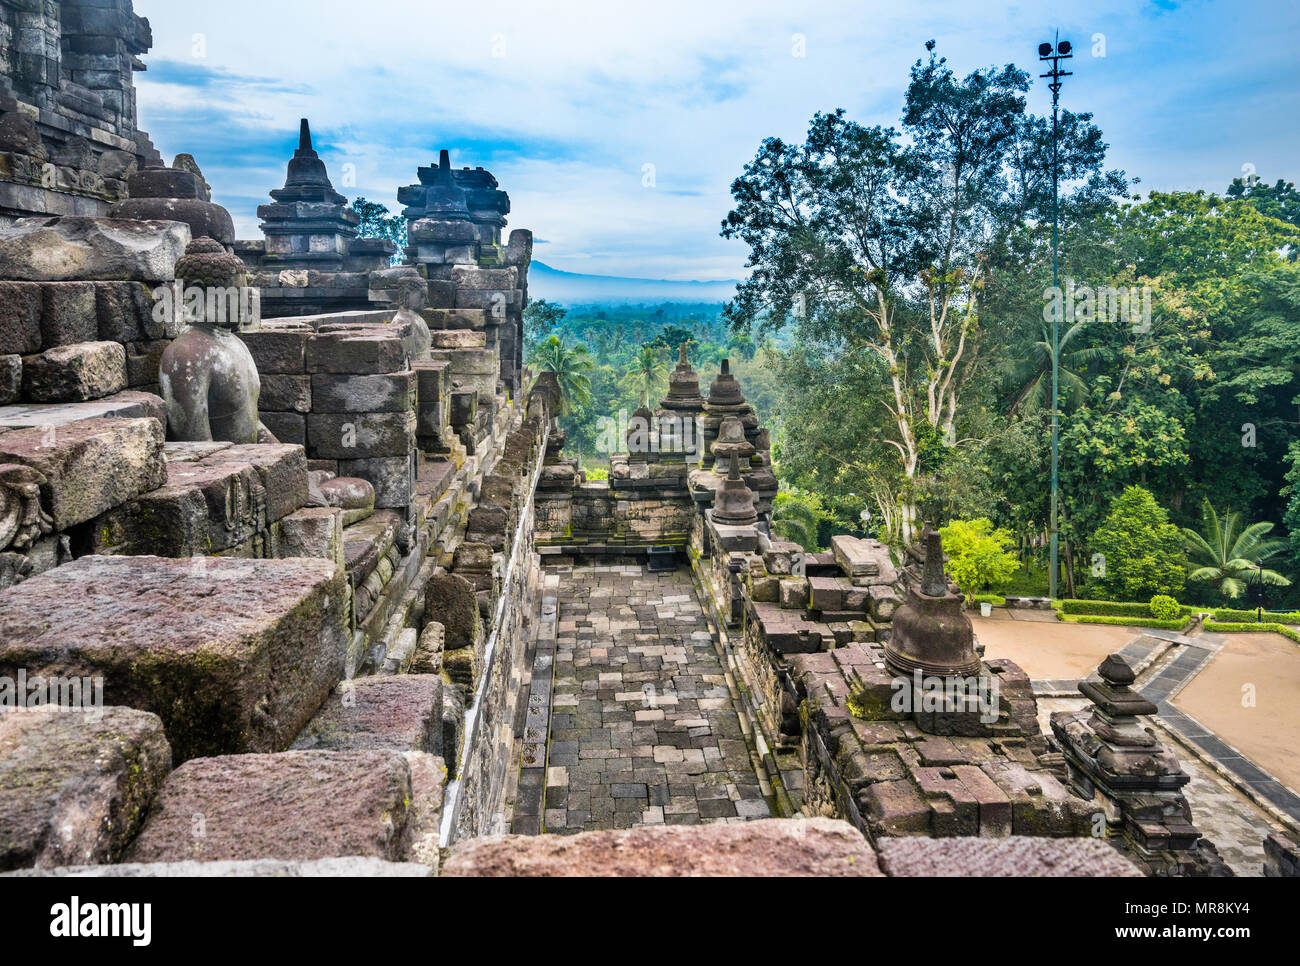 stone masonry corridor and balustrades of a lower platform at the 9th century Borobudur Buddhist temple, Central Java, Indonesia - Stock Image